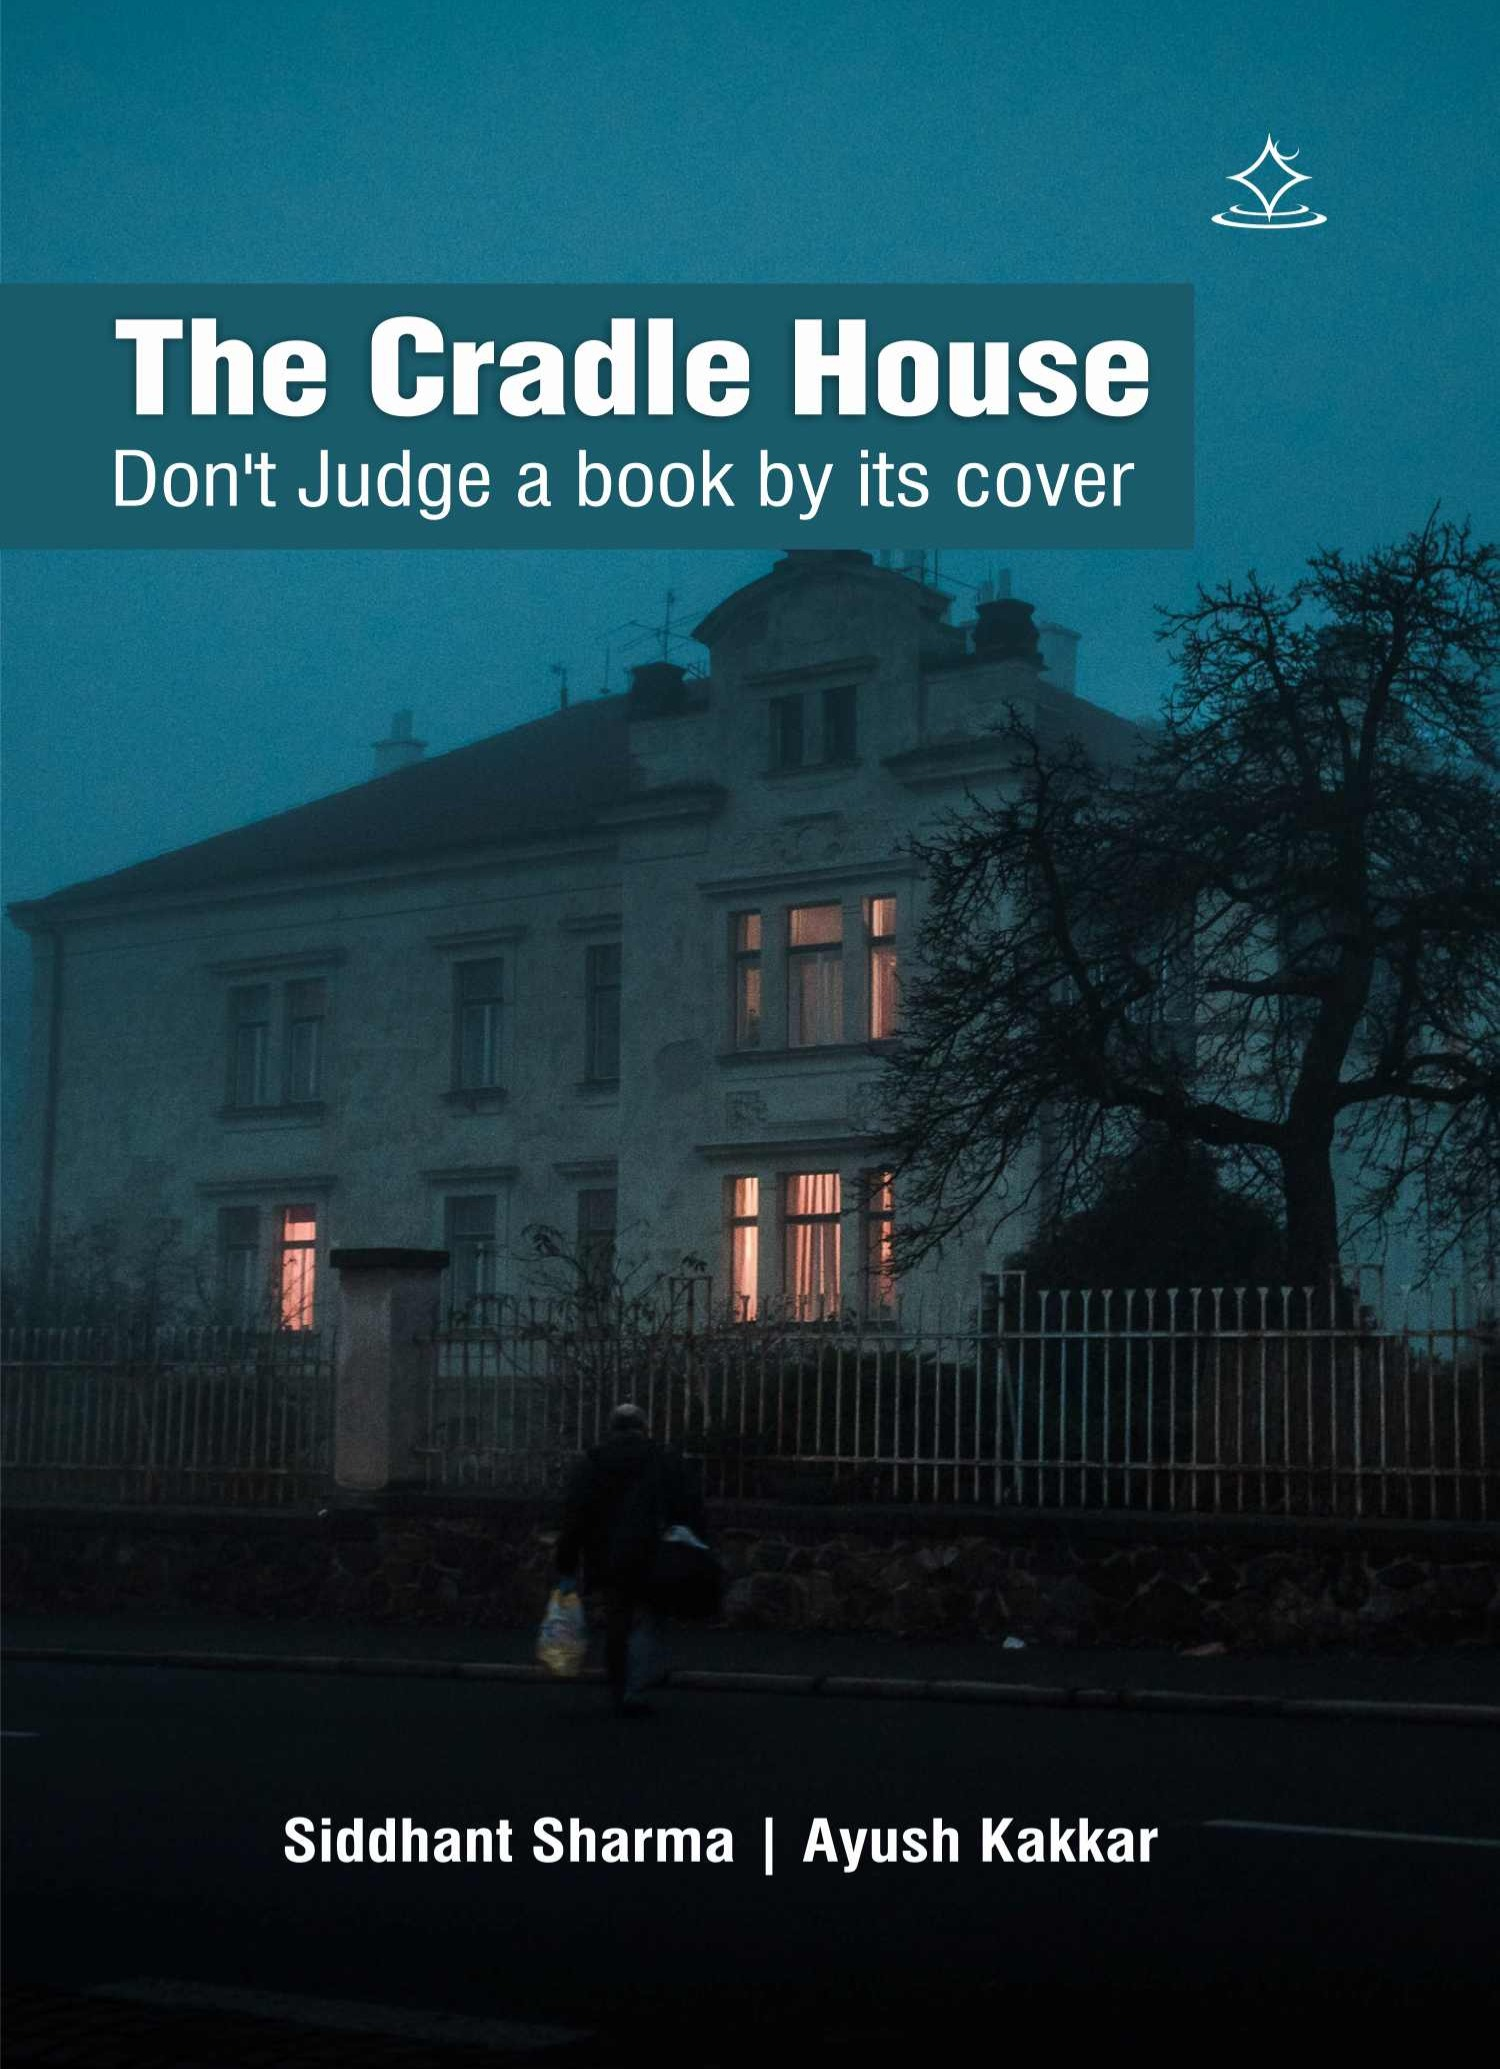 The Cradle House